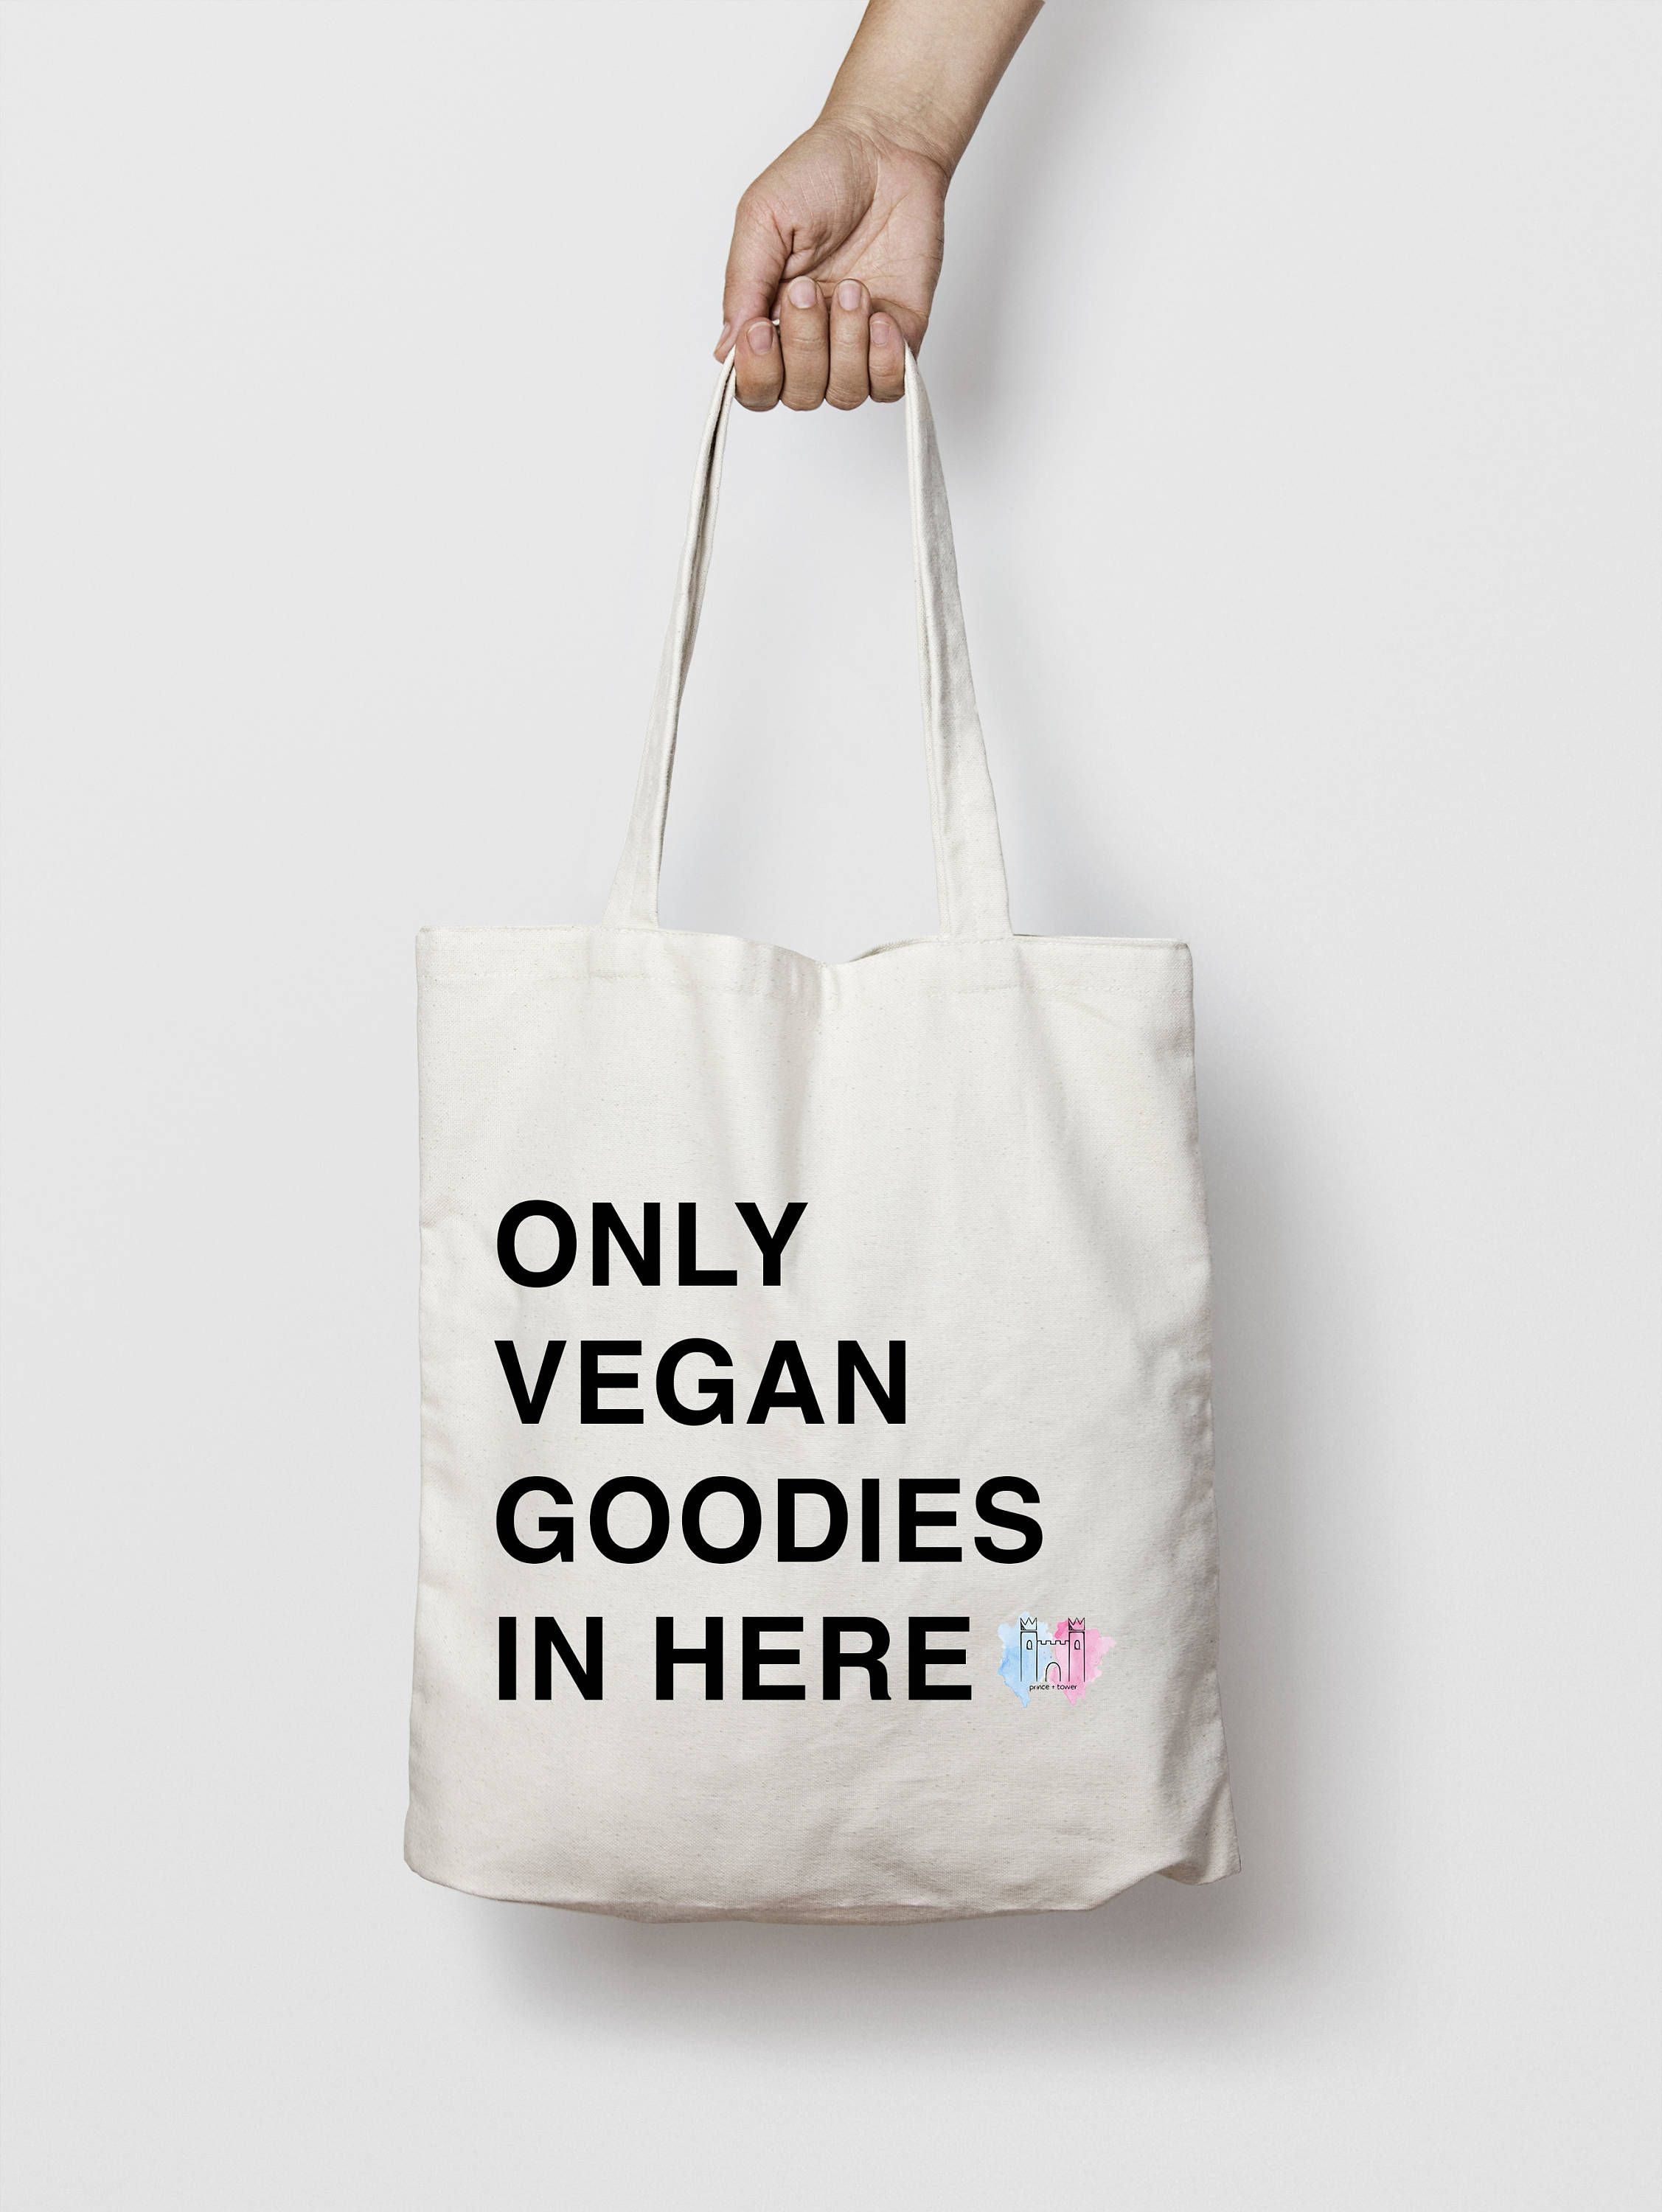 Vegan Tote Bag Custom Vinyl heat pressed tote bag Order your